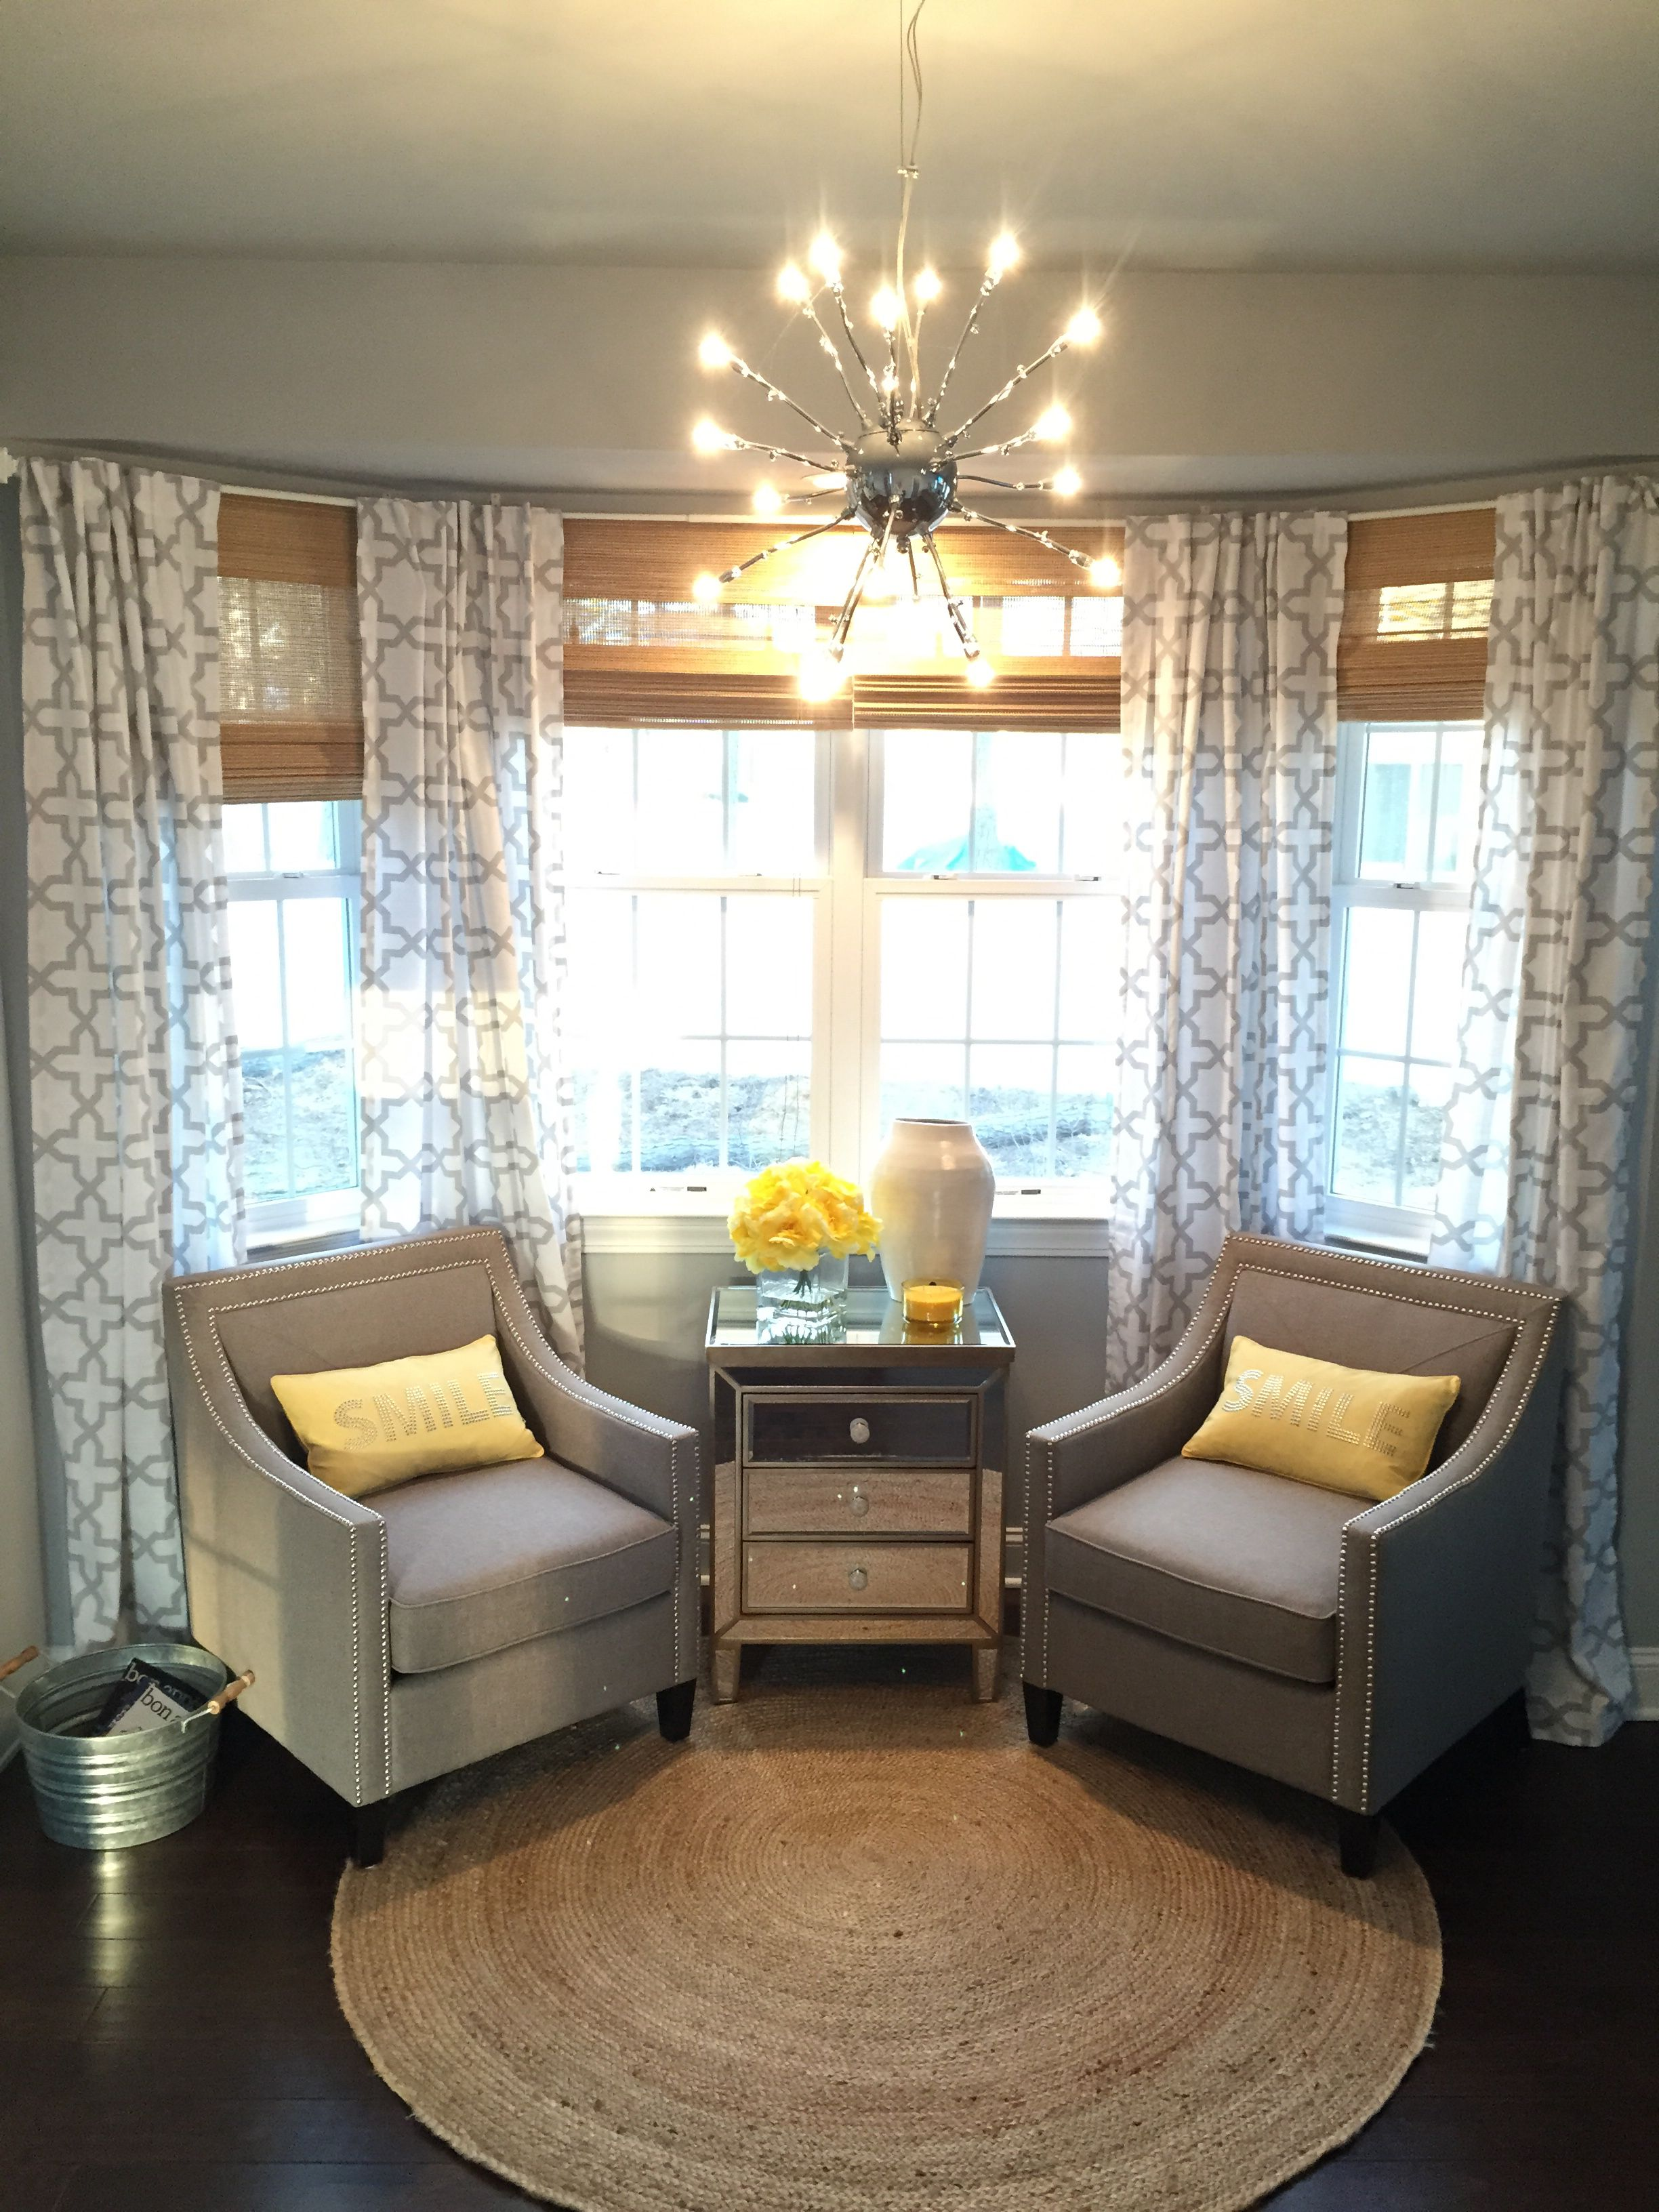 A Beautiful Bay Window With Two Neutral Taupe Linen Chairs Chrome Nail Head Detailing The Curtains Are White Gray Quatrefoil Print